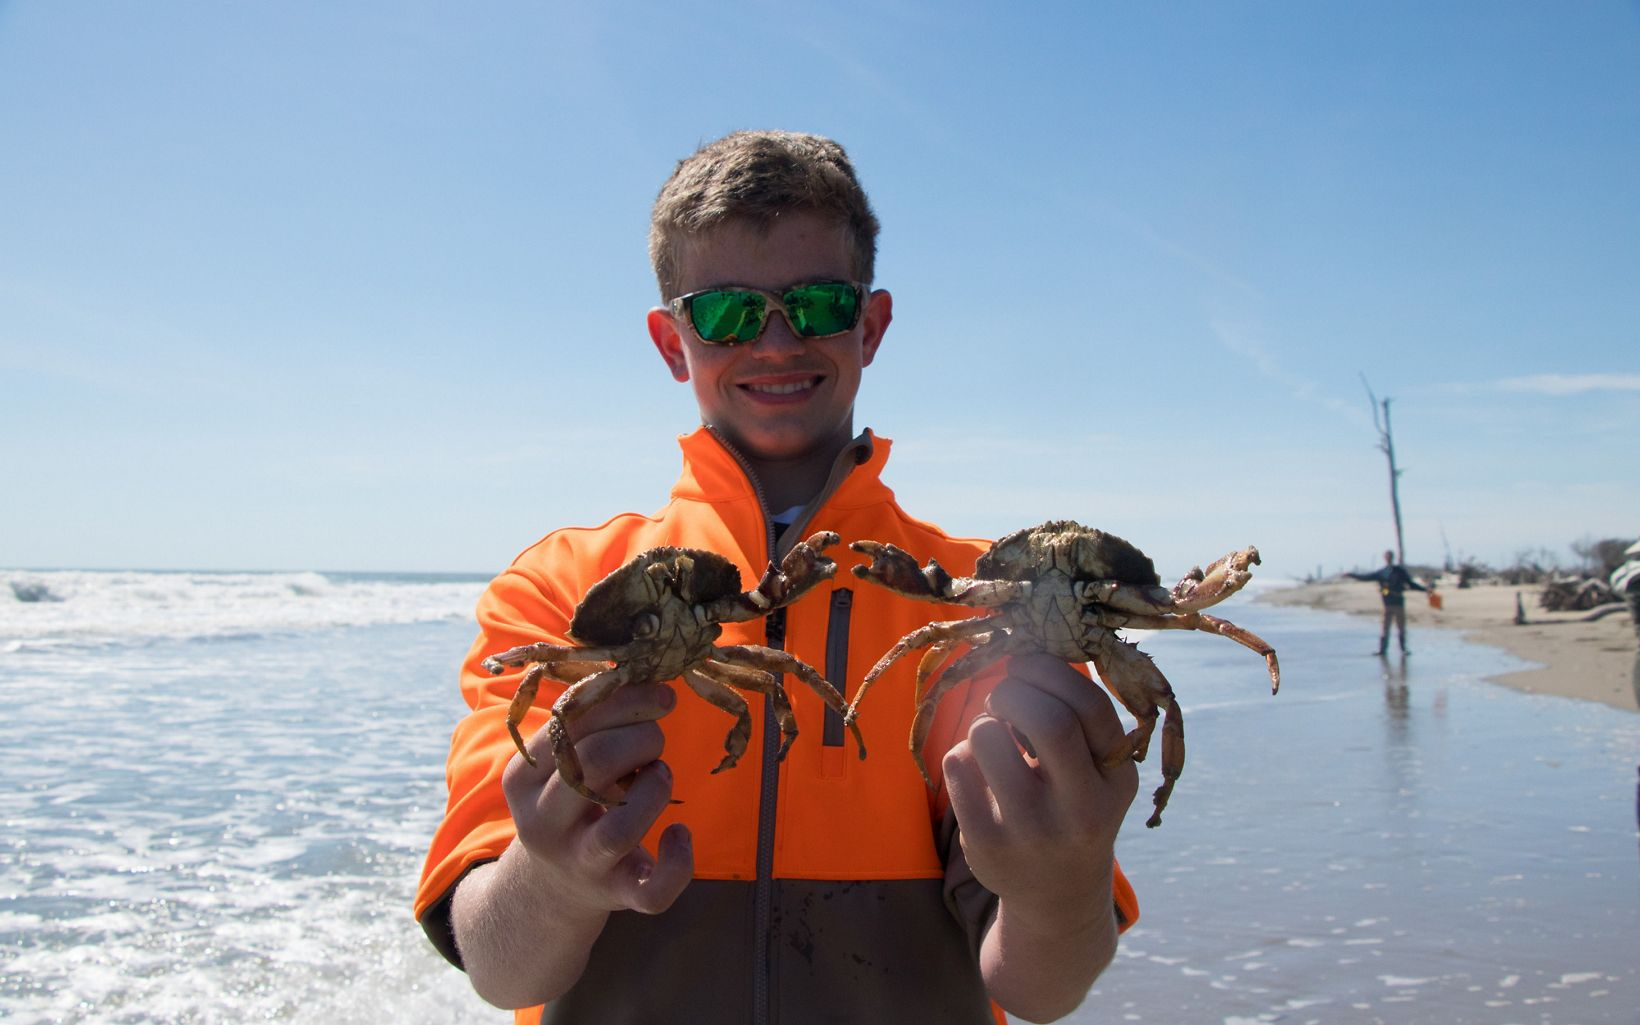 A smiling boy holds up two crabs.